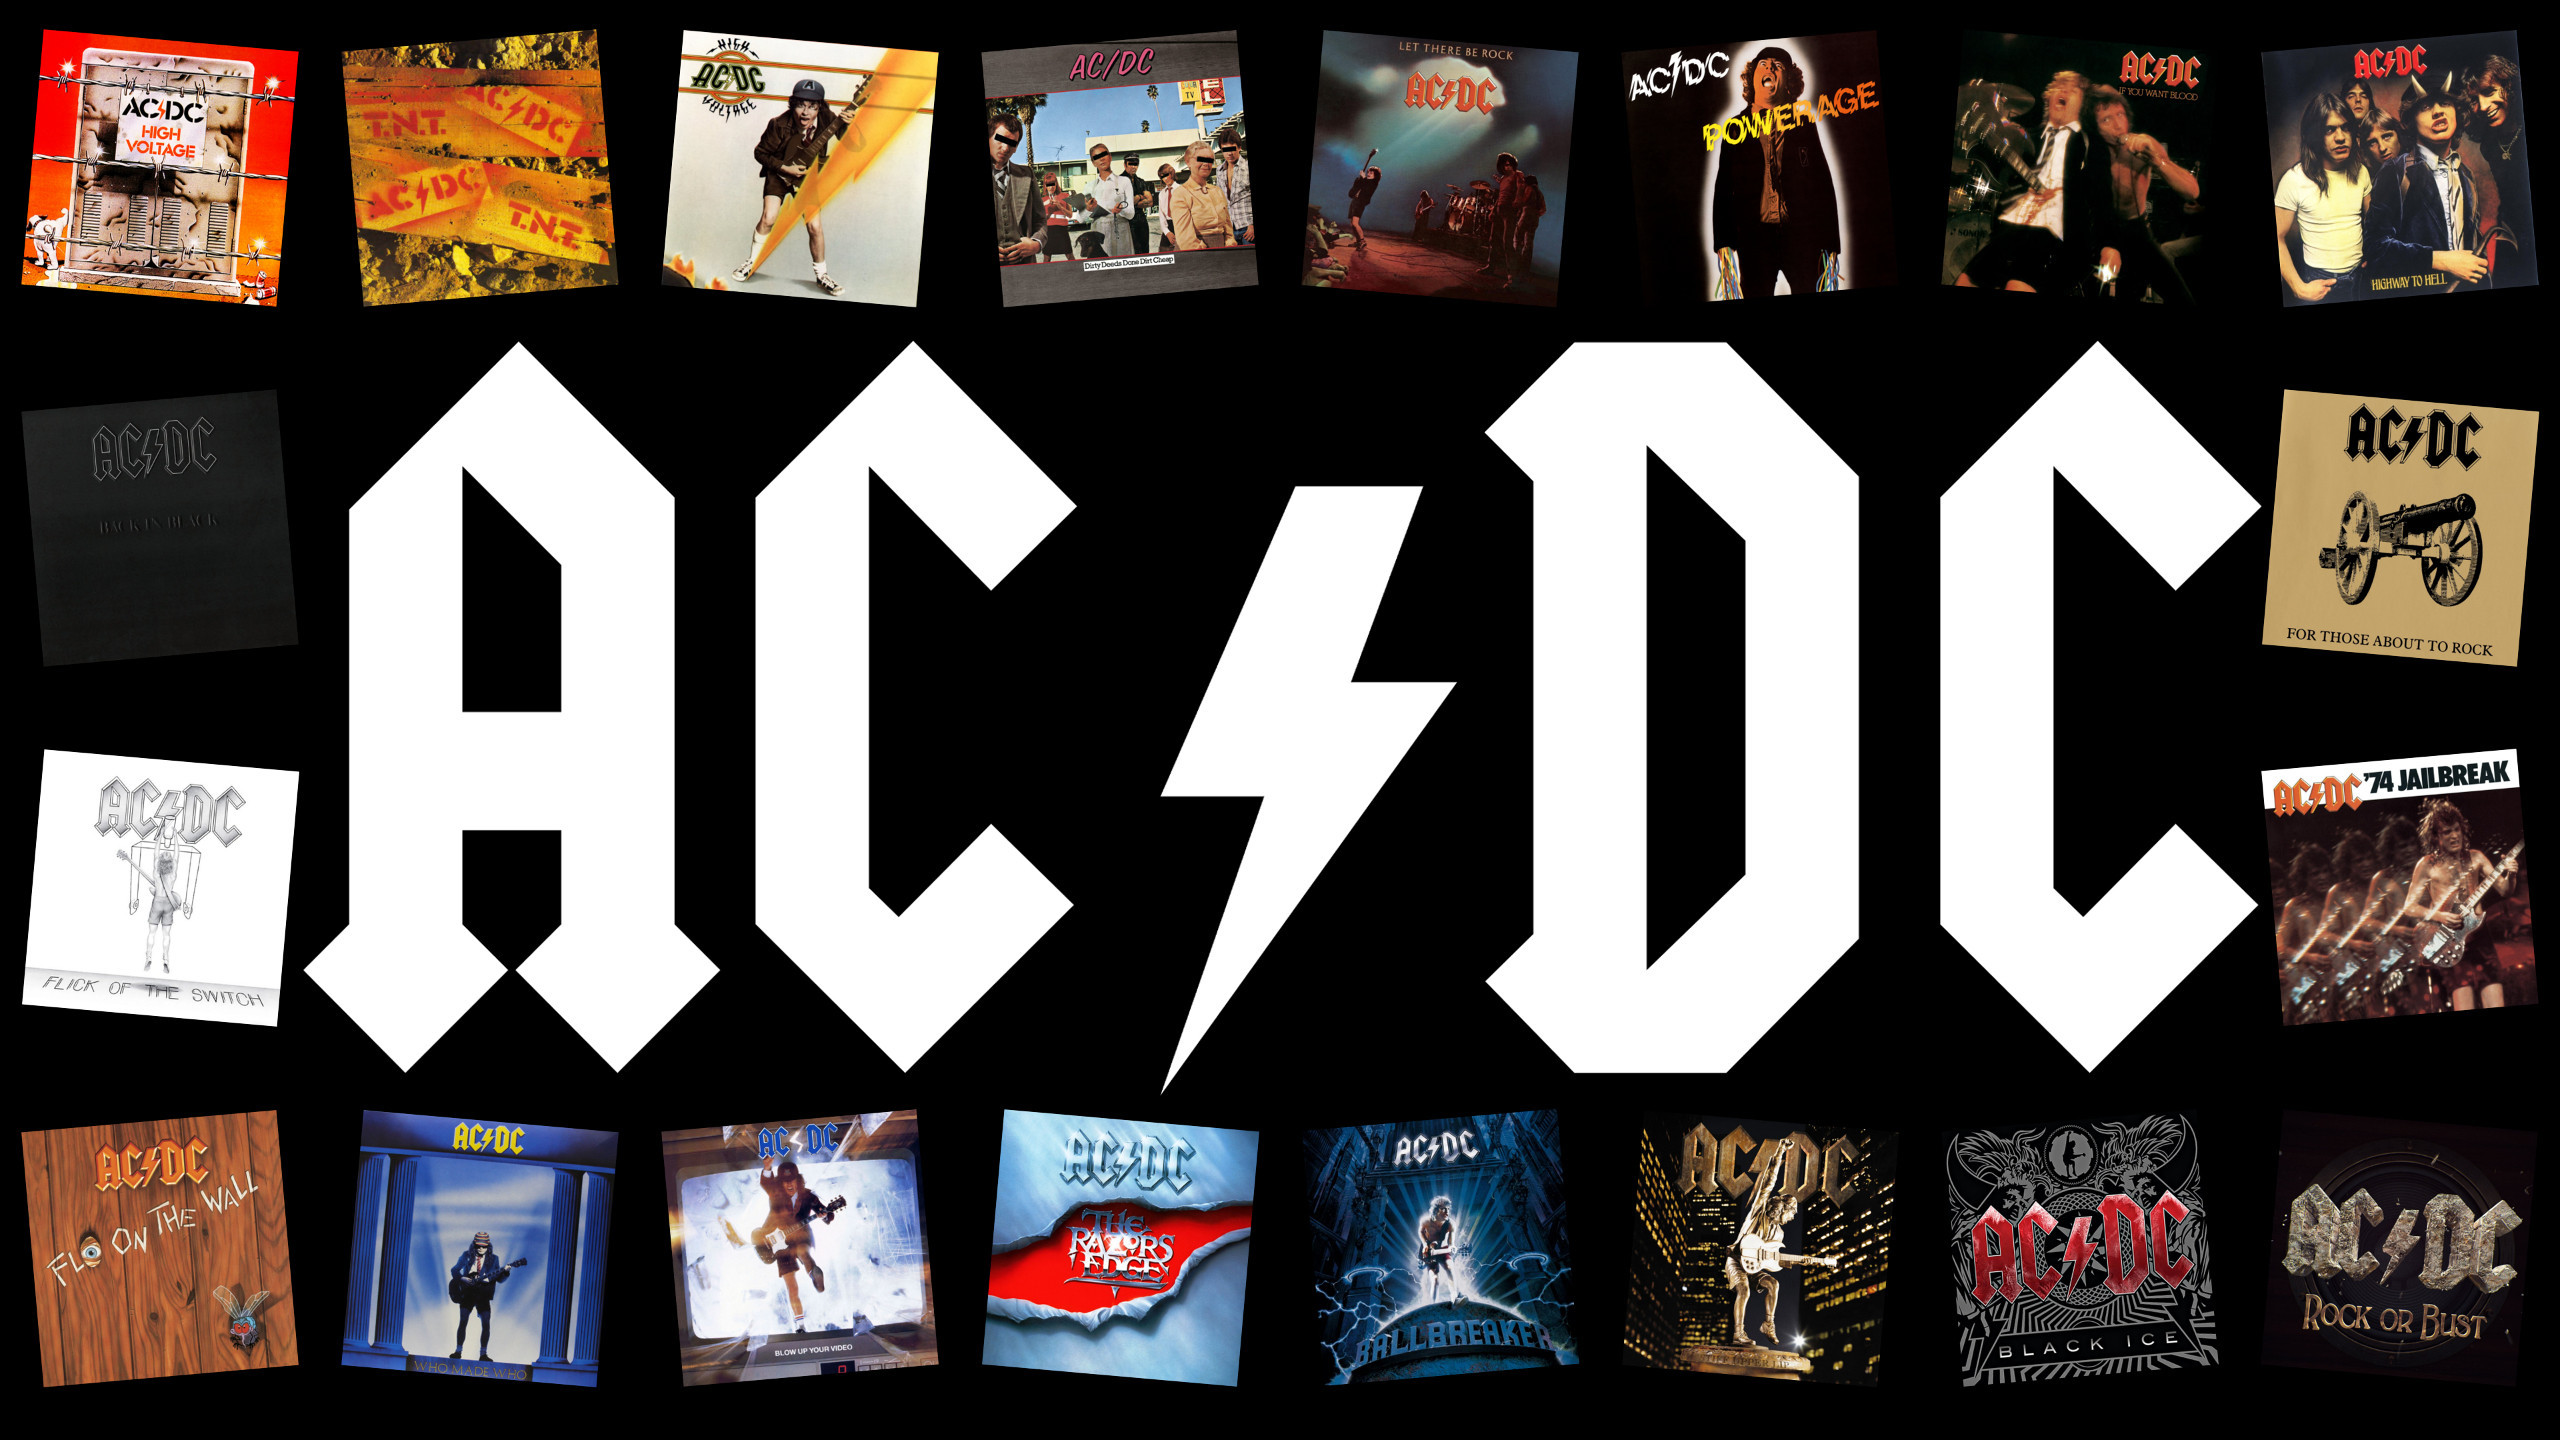 Cool acdc wallpaper 63 images - Ac dc wallpaper for android ...